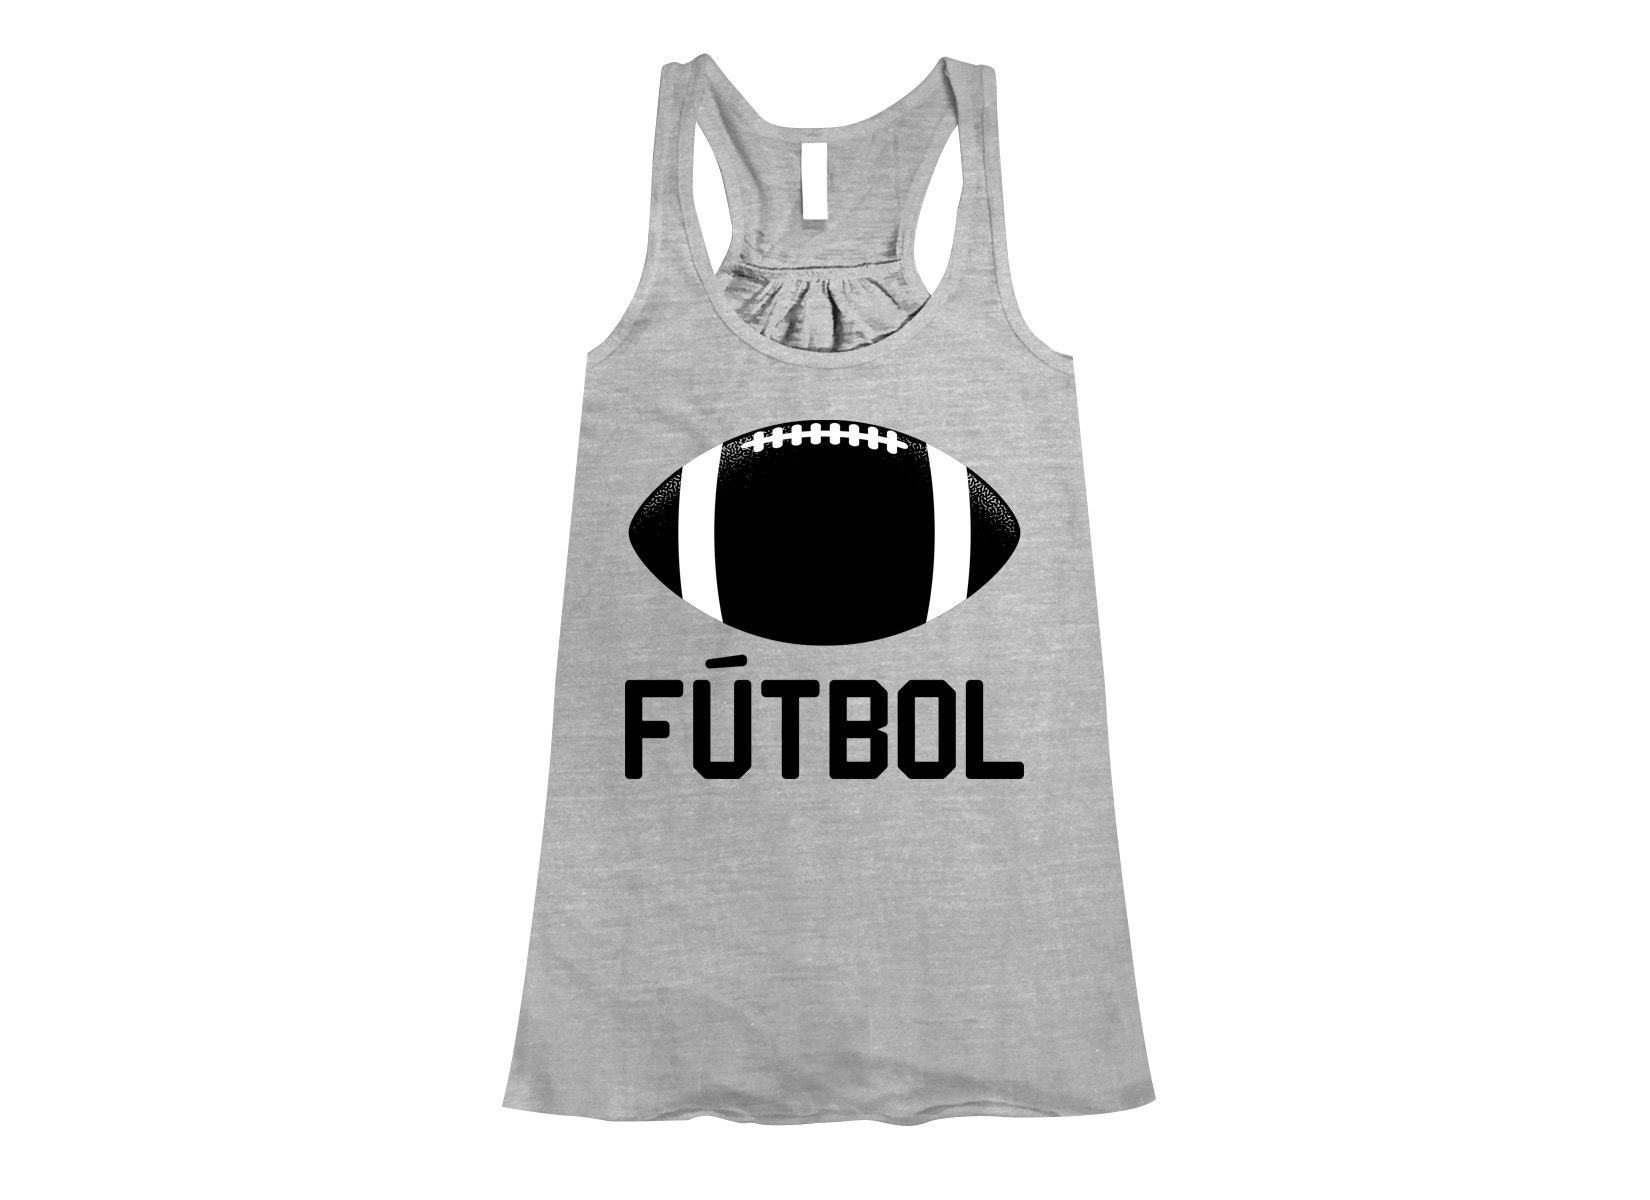 Futbol on Womens Tanks T-Shirt